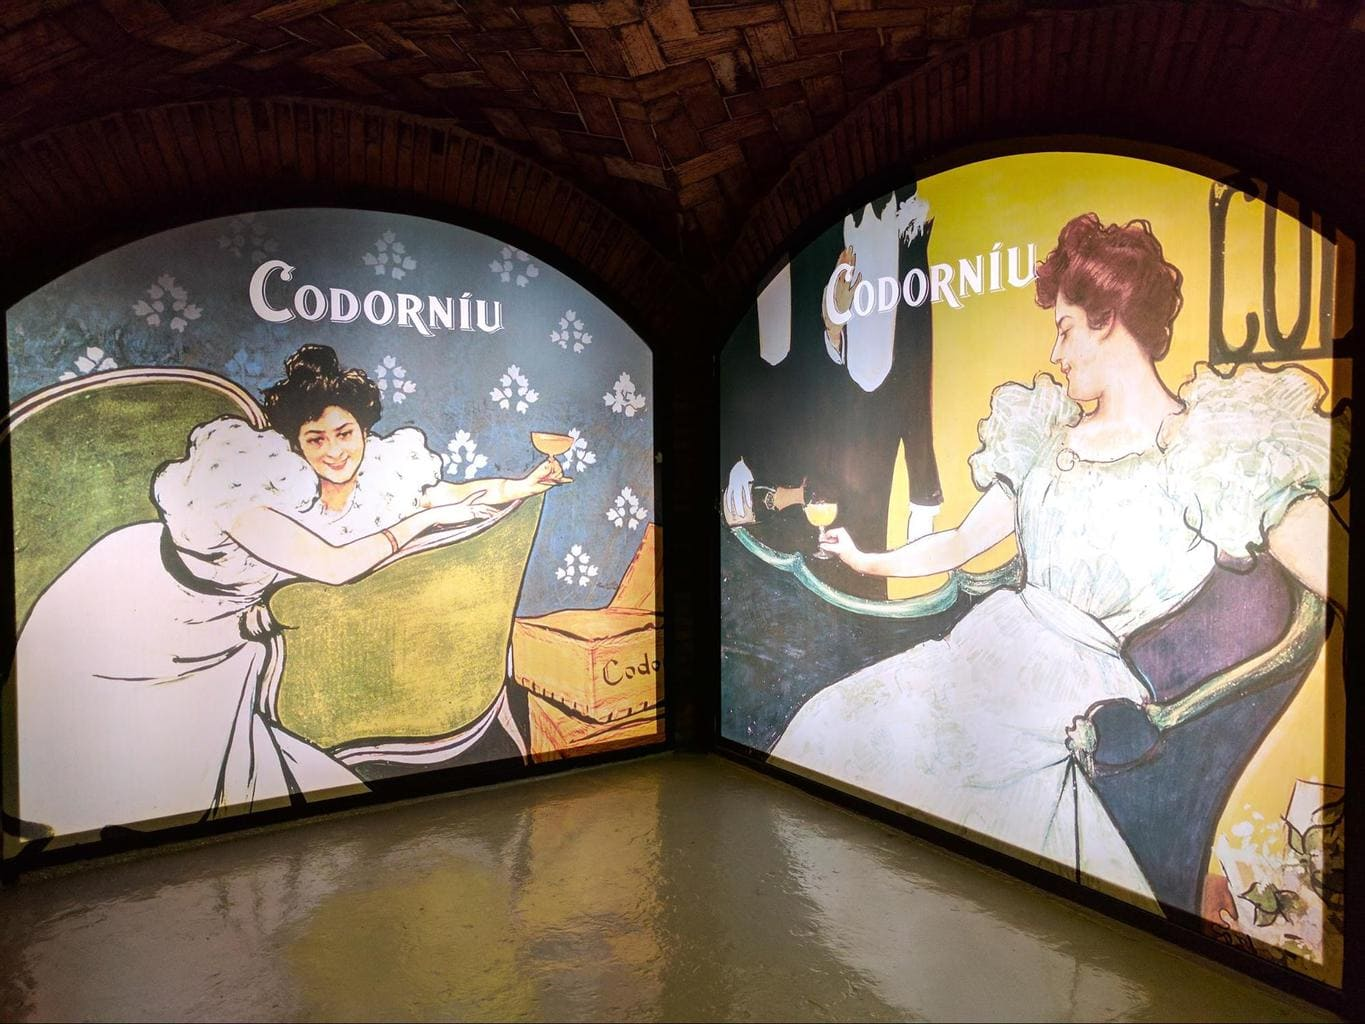 Codorniu's modernist past